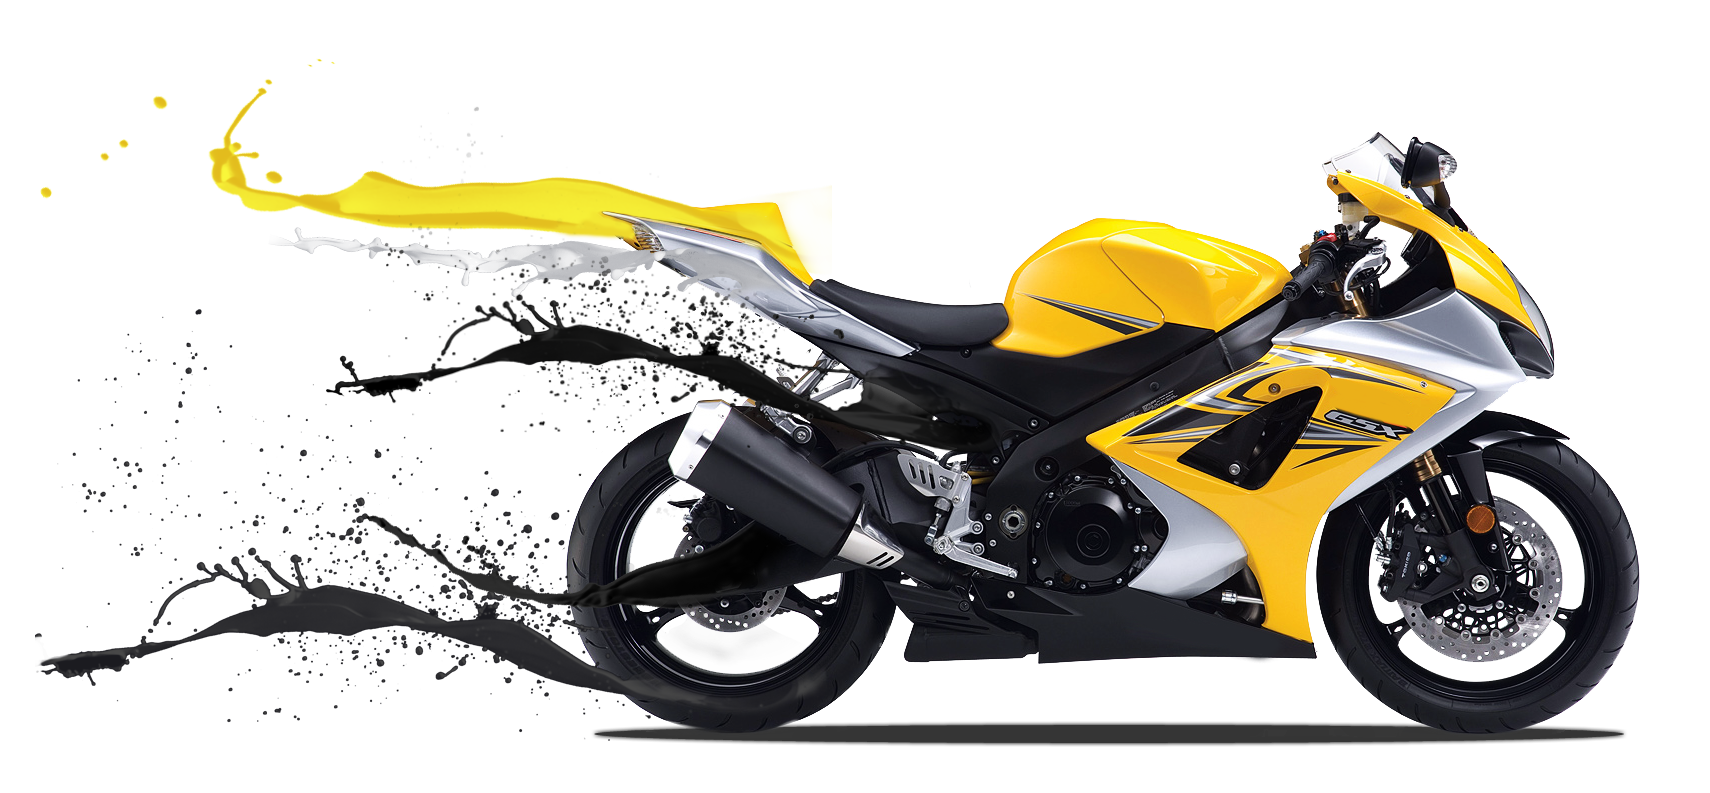 Motorbike hd png transparent. Motorcycle clipart yellow motorcycle